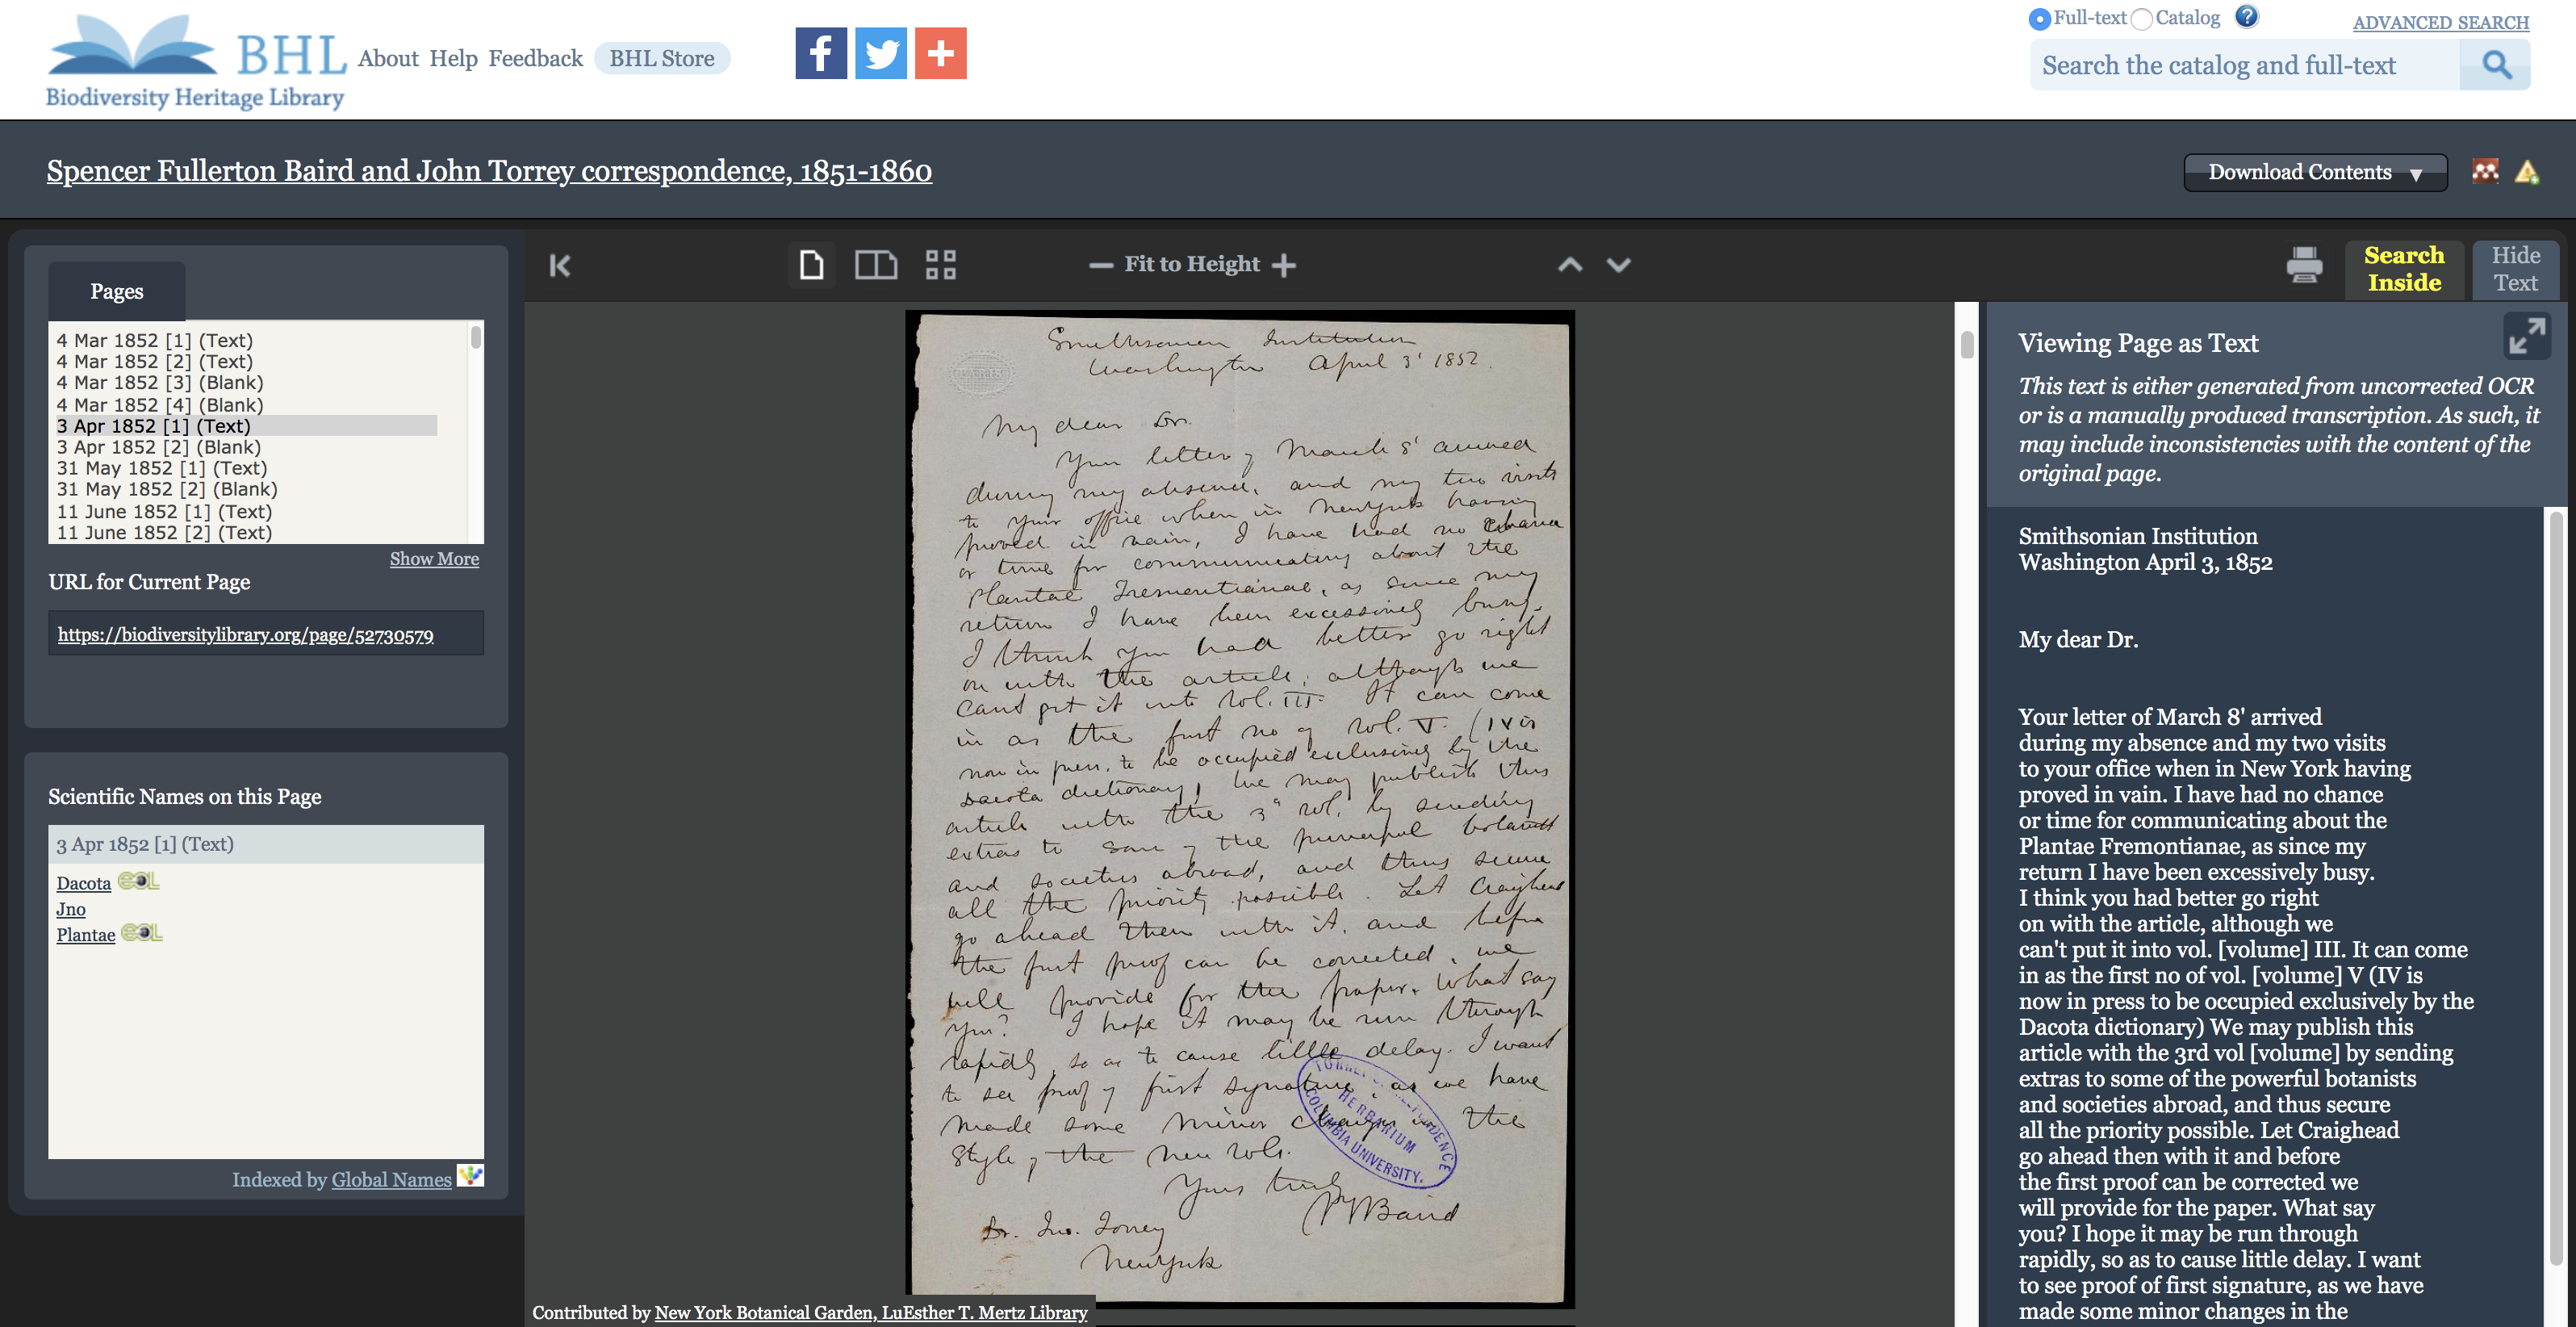 Book viewer in BHL with correspondence and crowdsourced transcription.